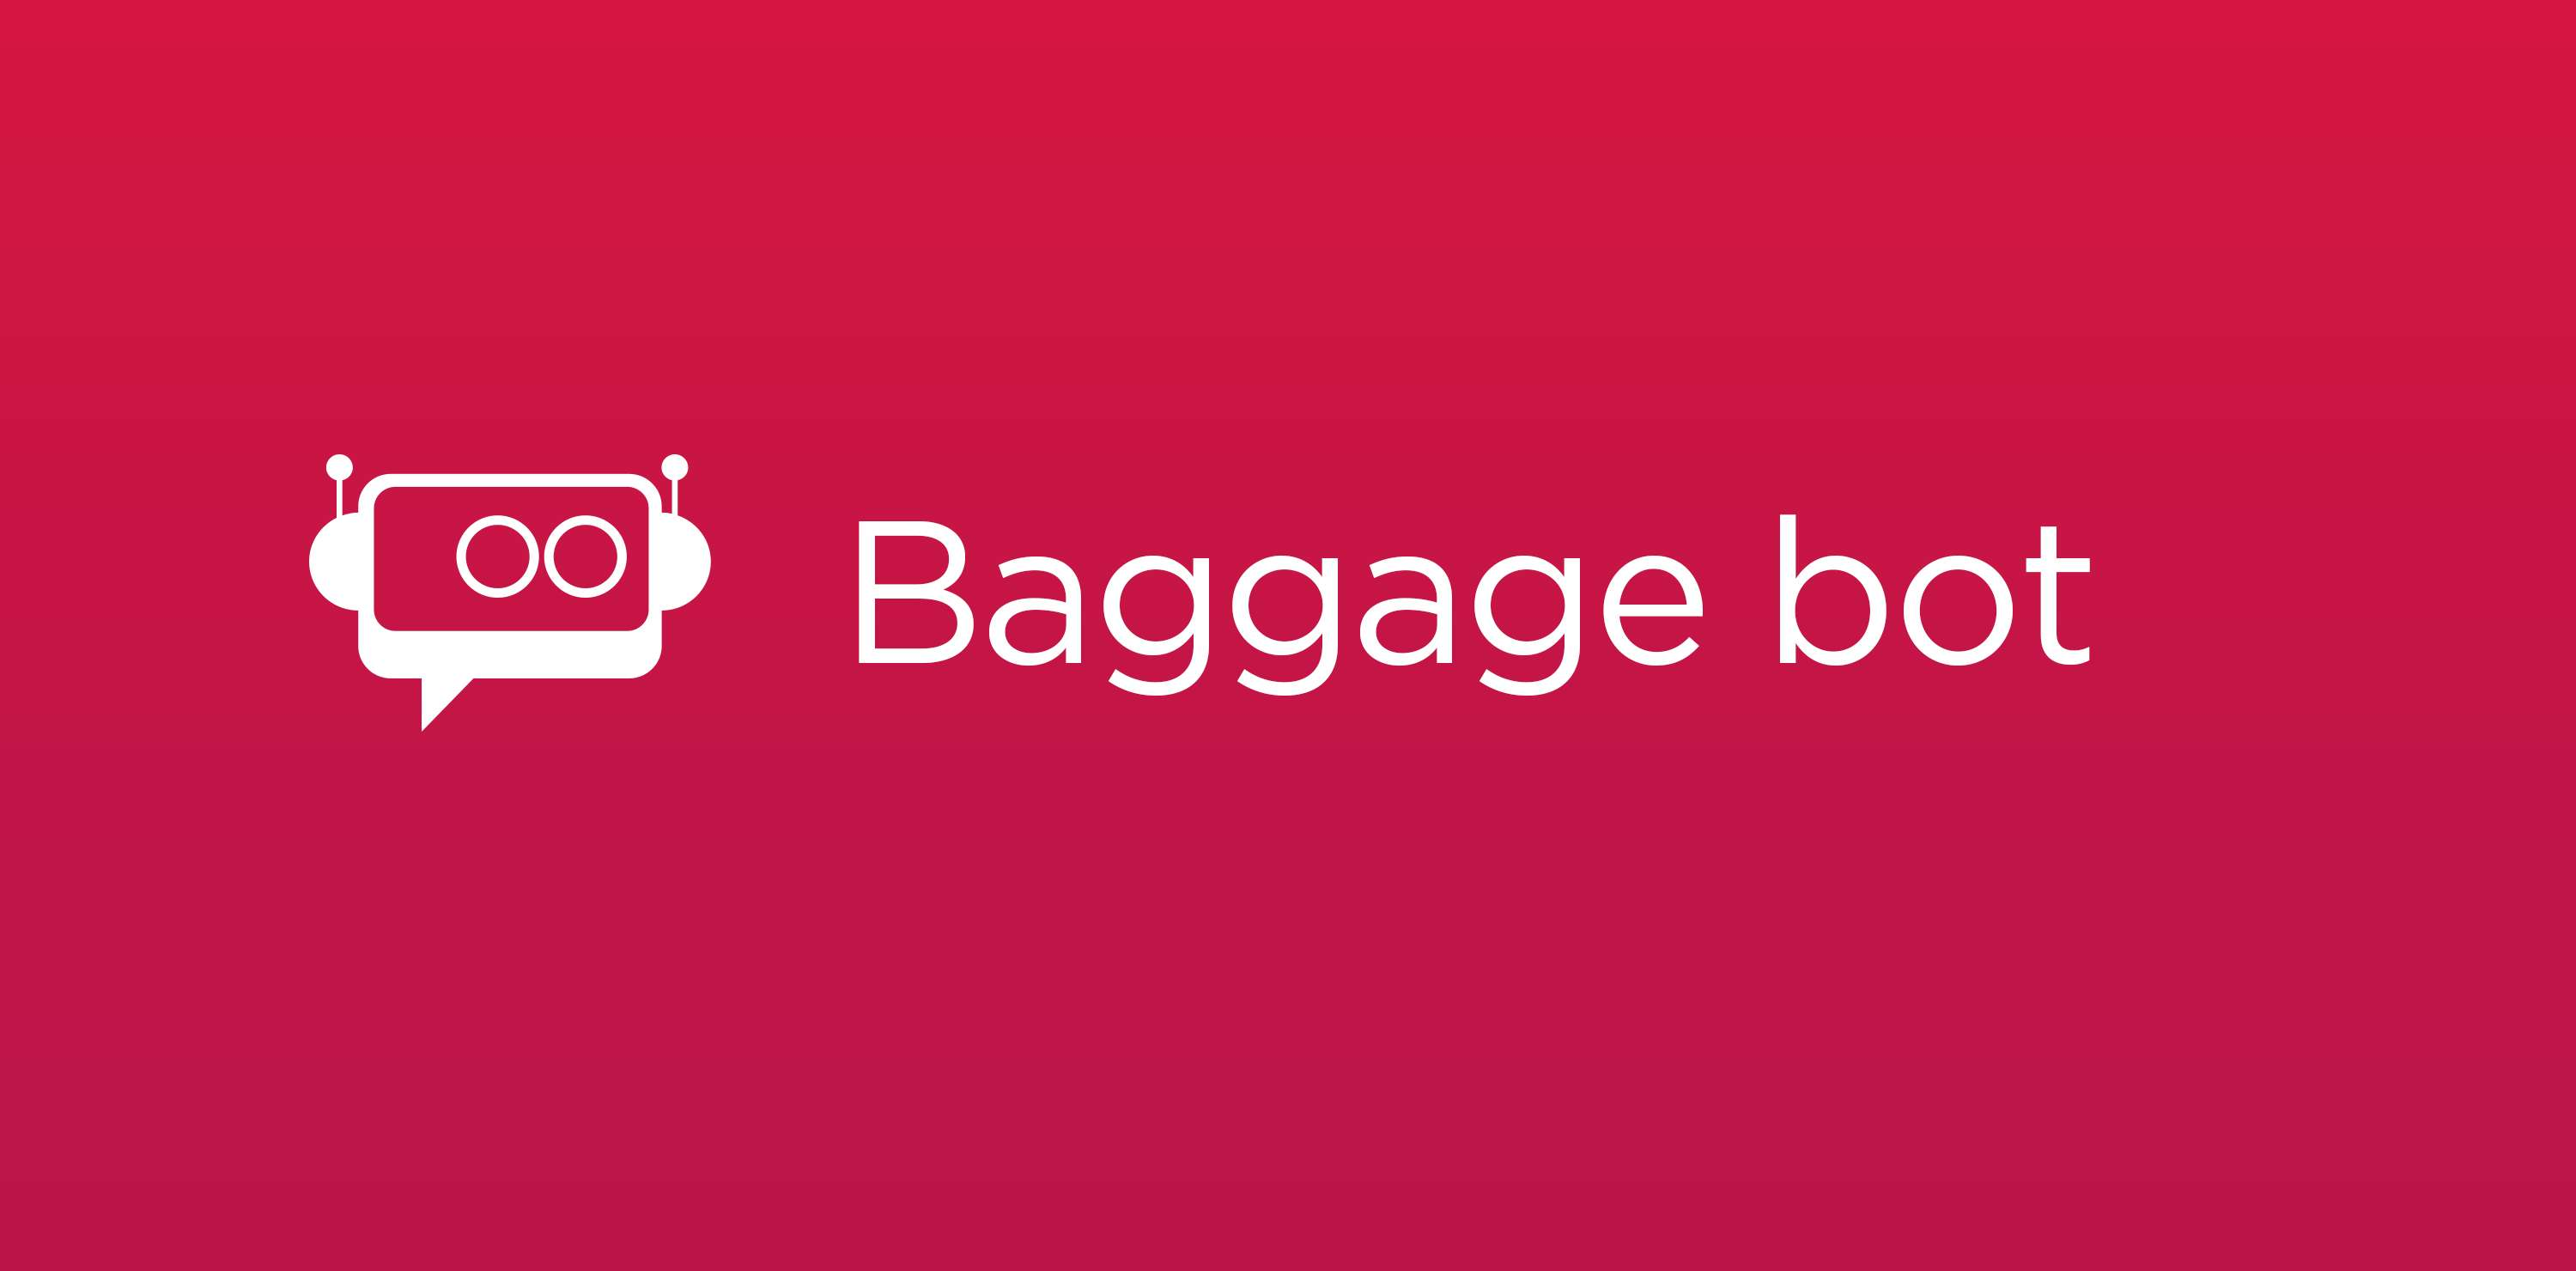 c5d051be0c Baggage bot is learning what Virgin Atlantic customers need to know and  developing and providing quick responses to your most frequently asked  questions.